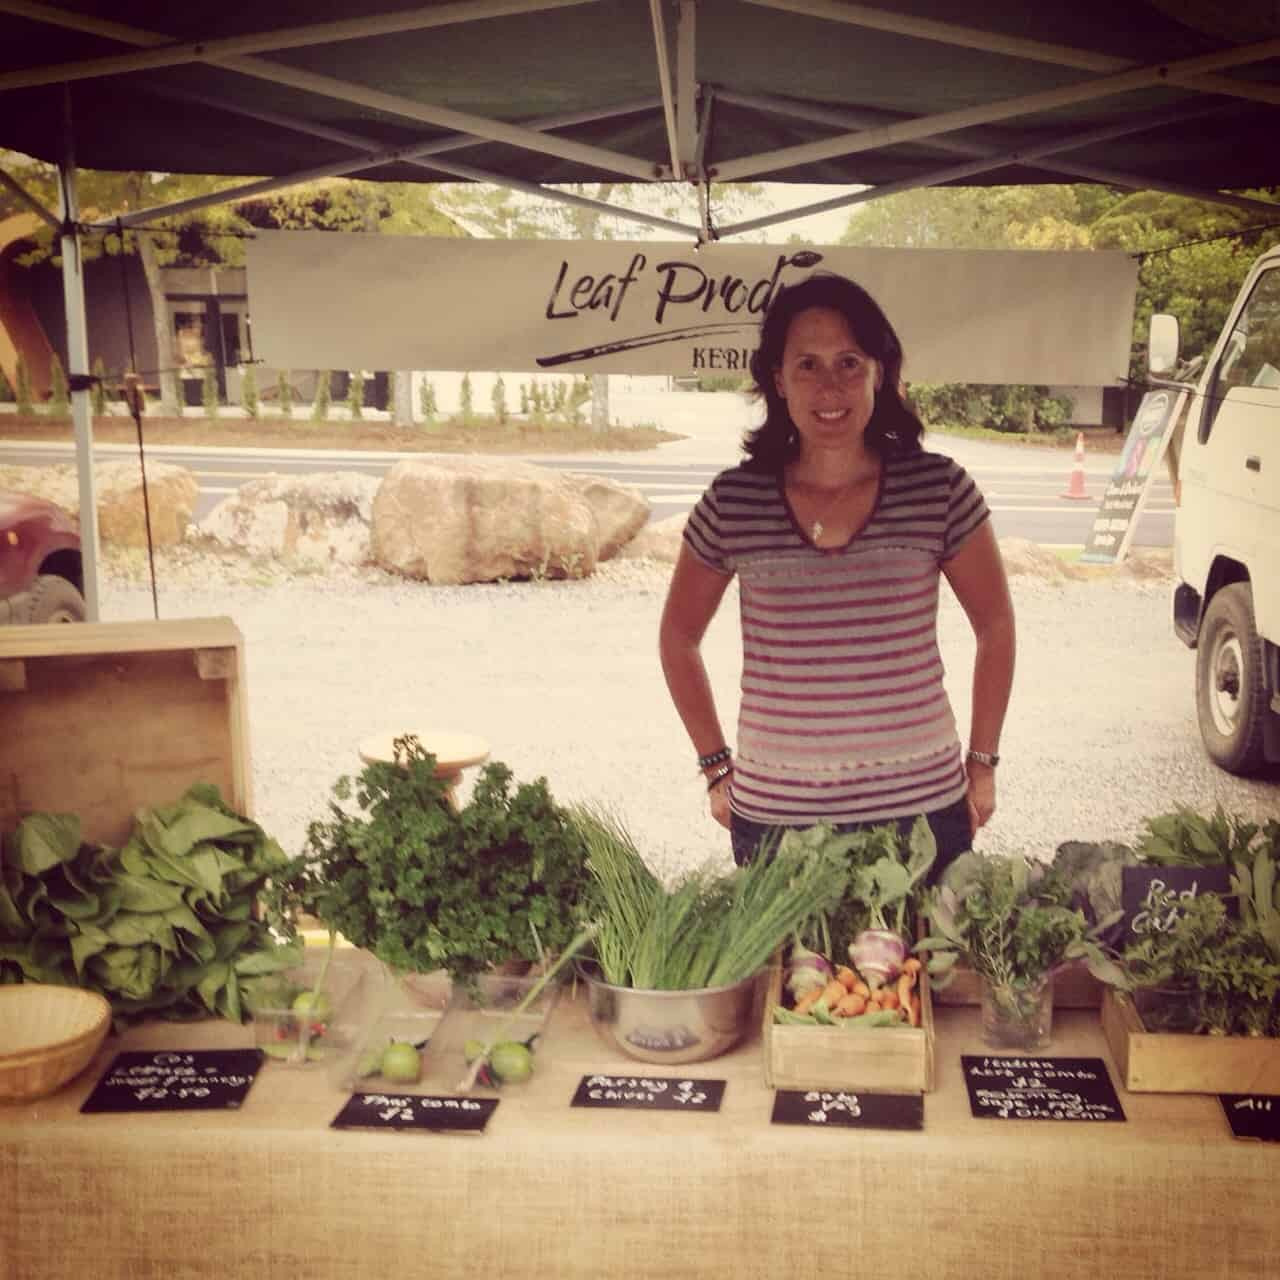 I sometimes have a stall at The Old Packhouse Market, Kerikeri, for Leaf Produce, selling my homegrown lettuces and herbs.